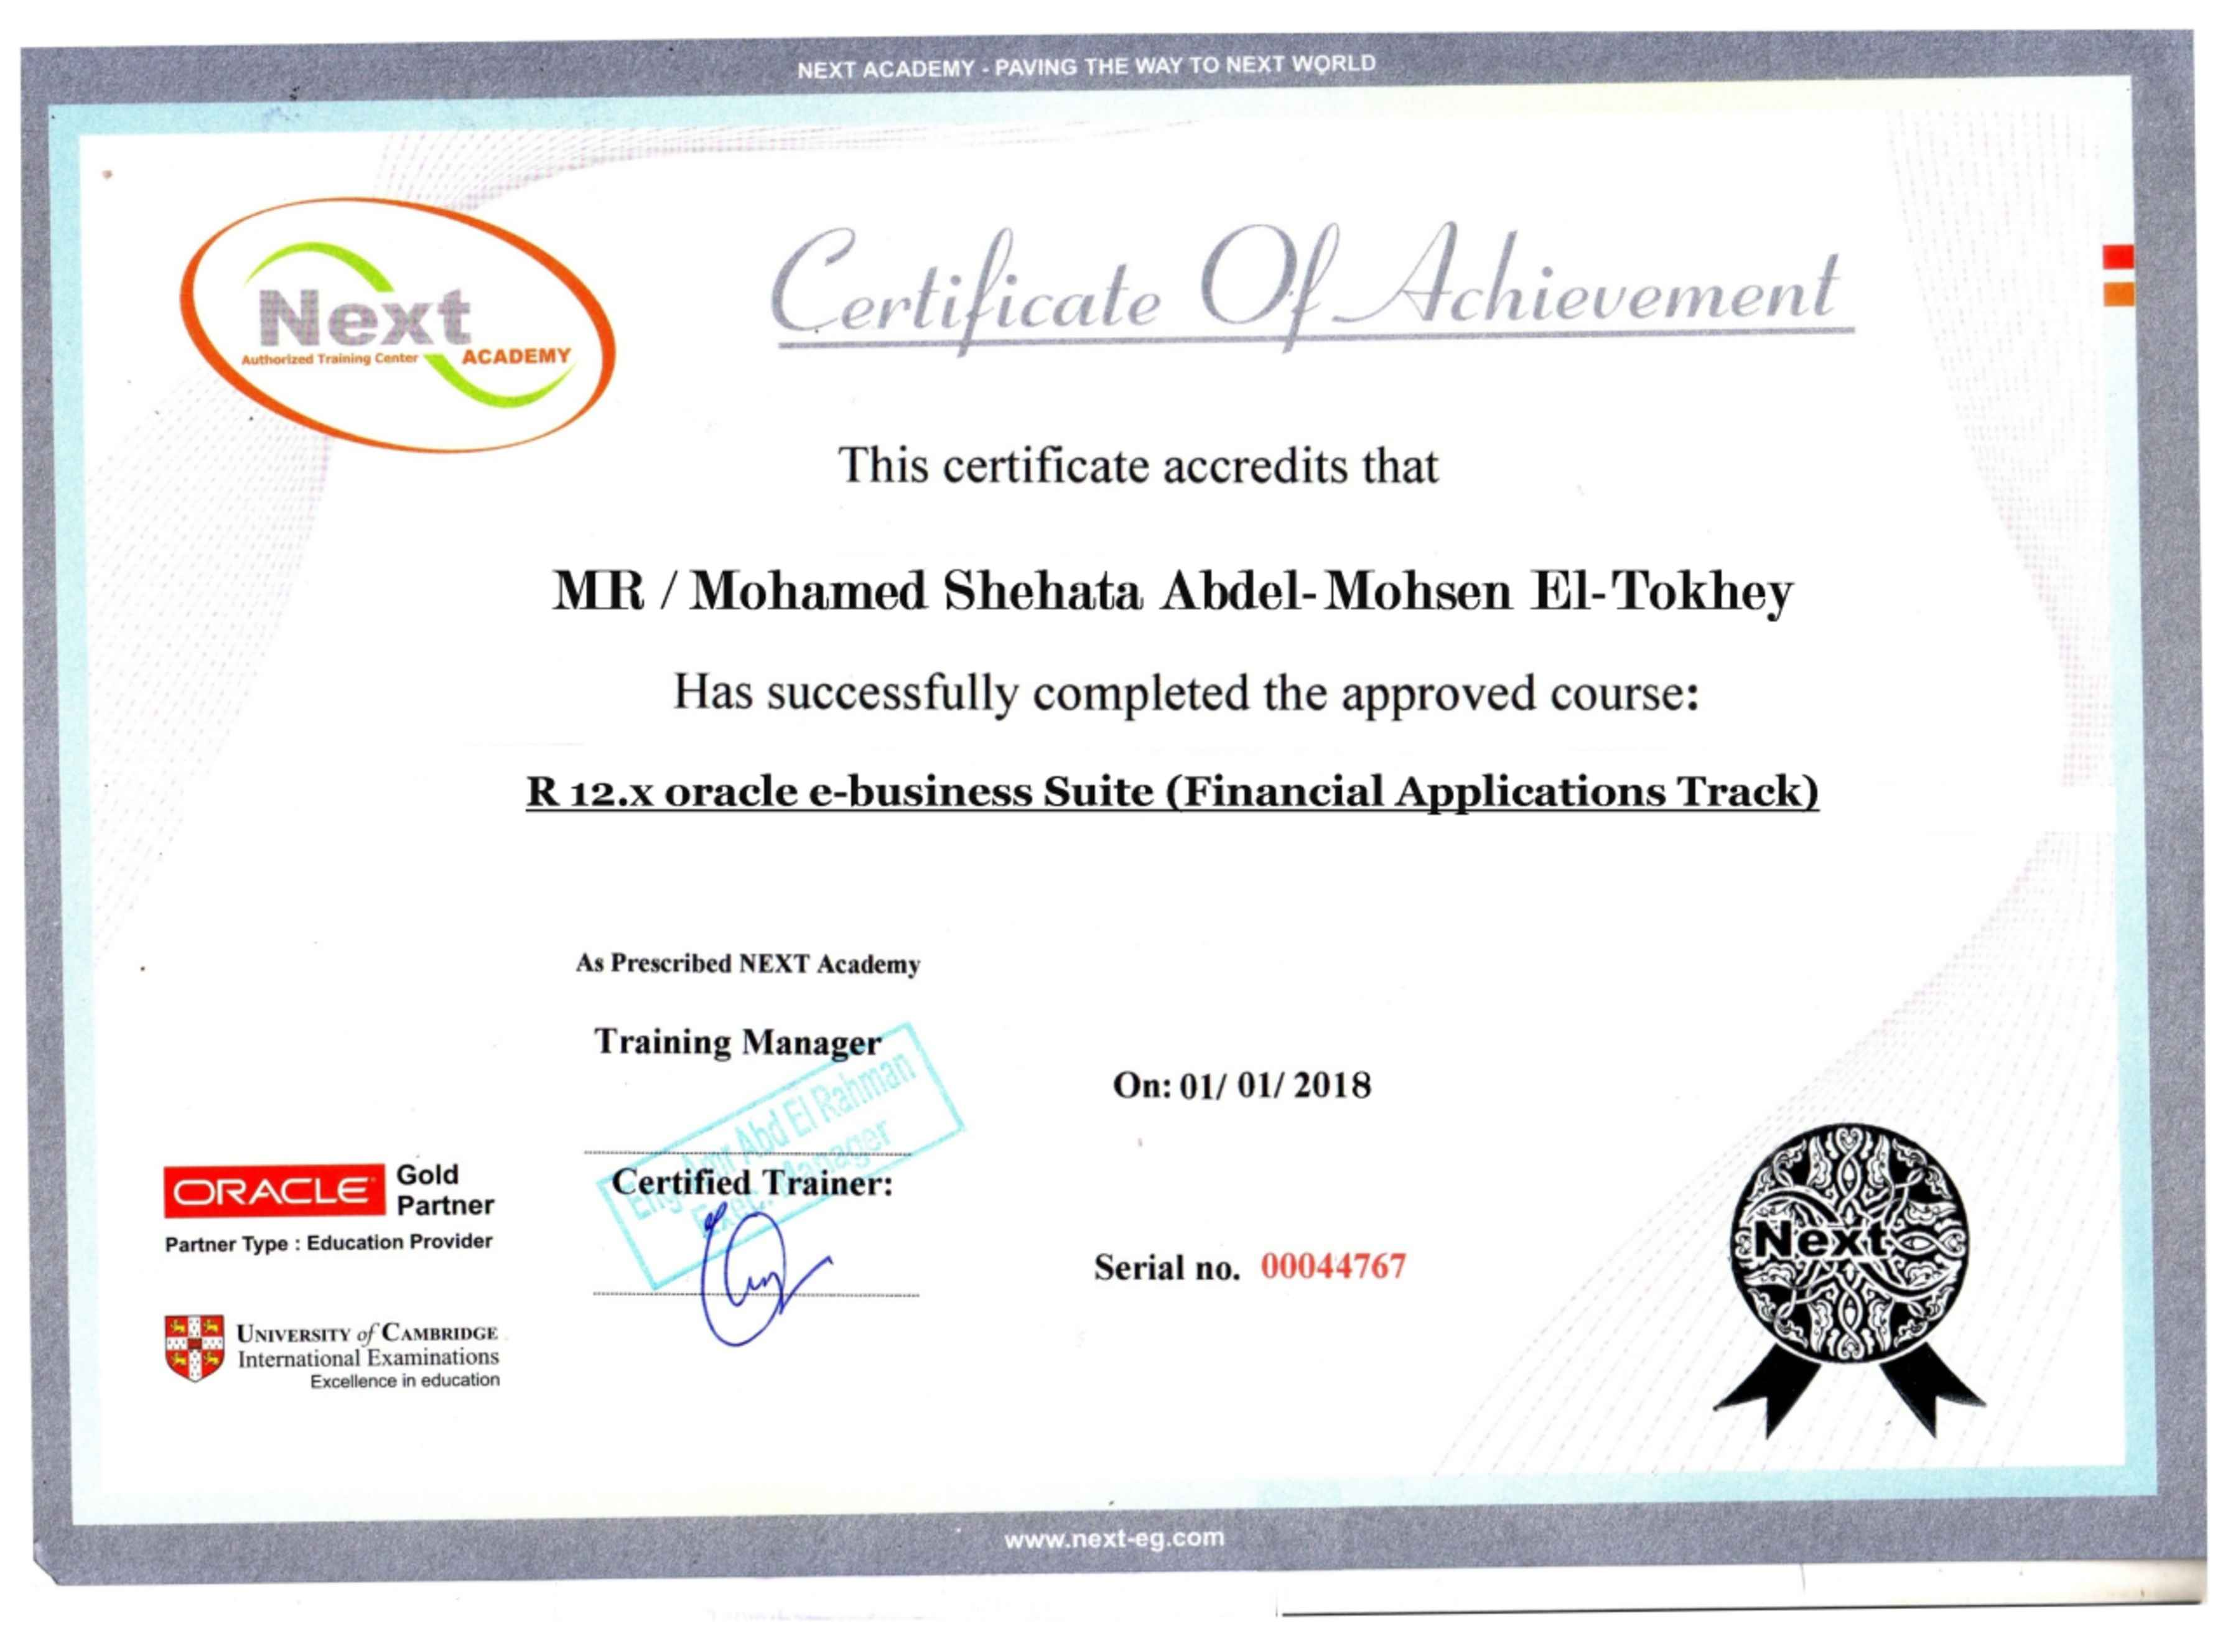 Mohamed eltokhey oracle e business bayt r12x e business suit financial applications track certificate 1betcityfo Gallery